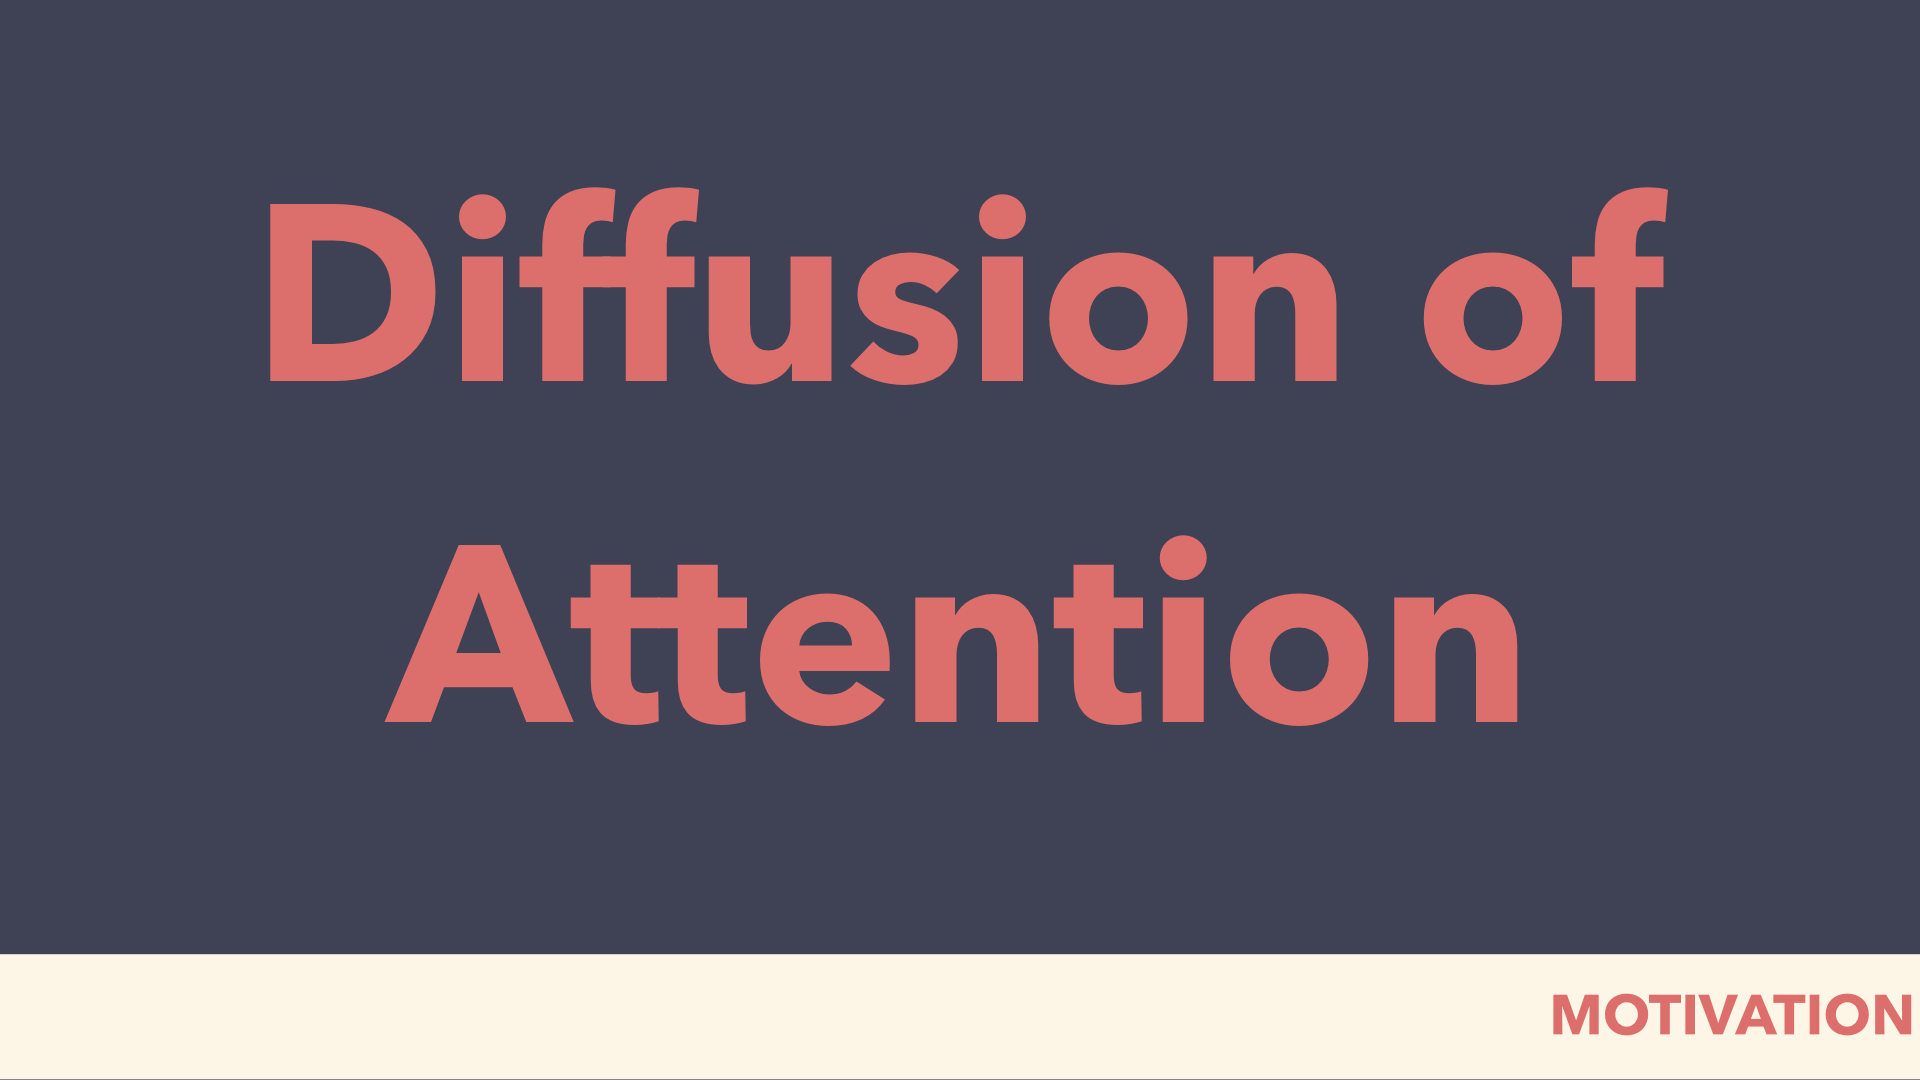 Diffusion of Attention